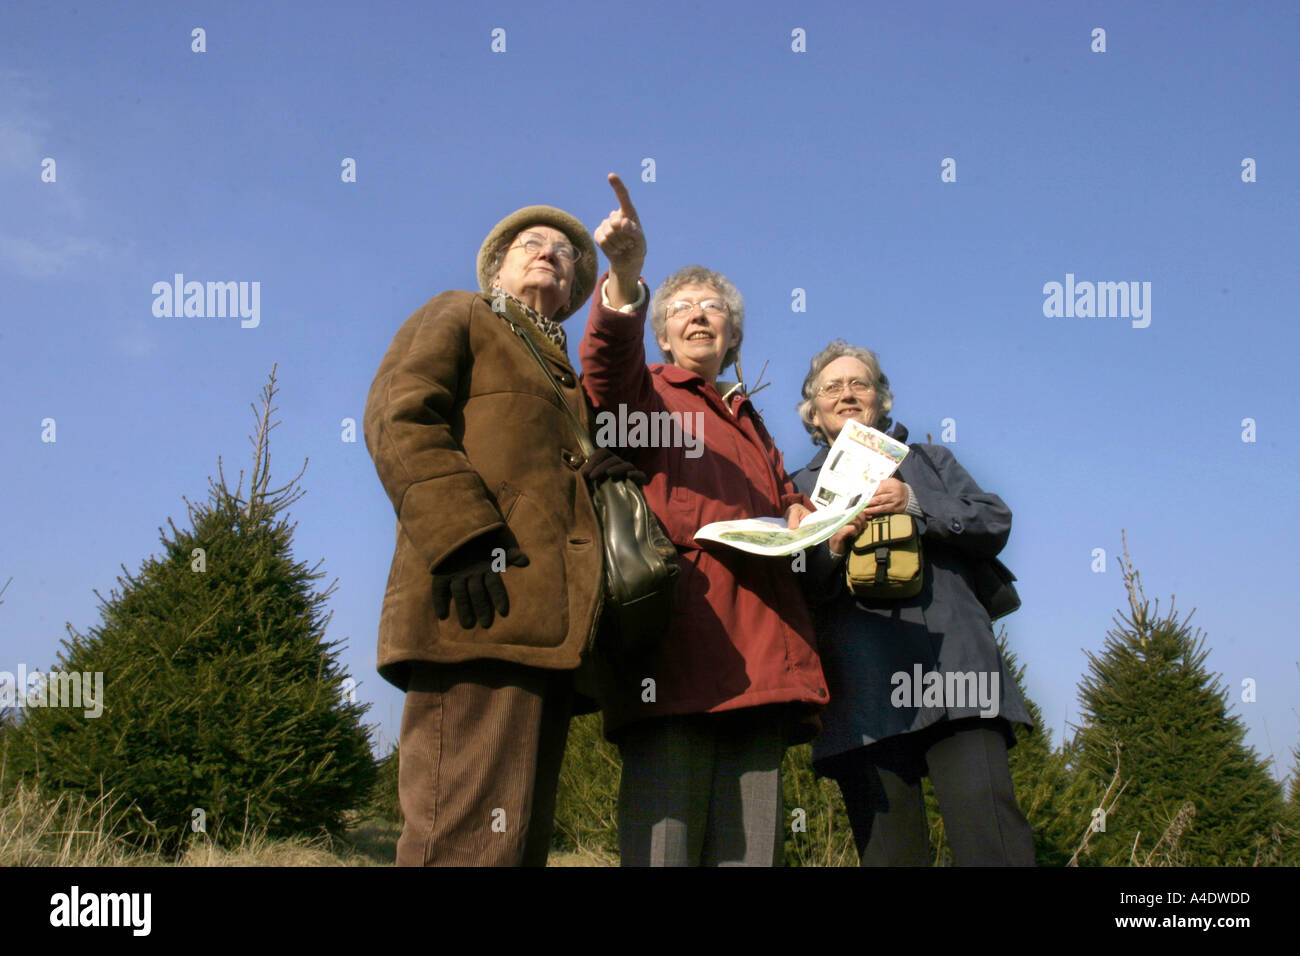 Three visitors read a map at the Bedgebury National Pinetum in Kent UK - Stock Image